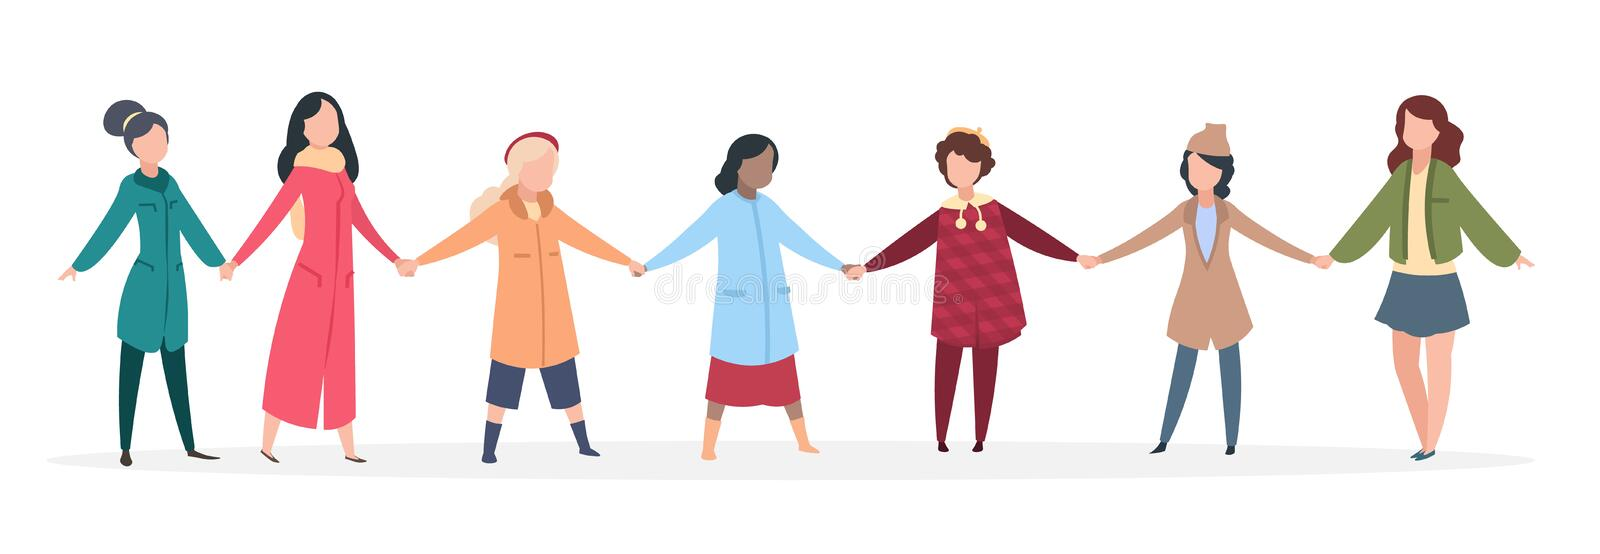 Female manifestation. Women holding hands, young people united together. Happy friendship vector royalty free illustration